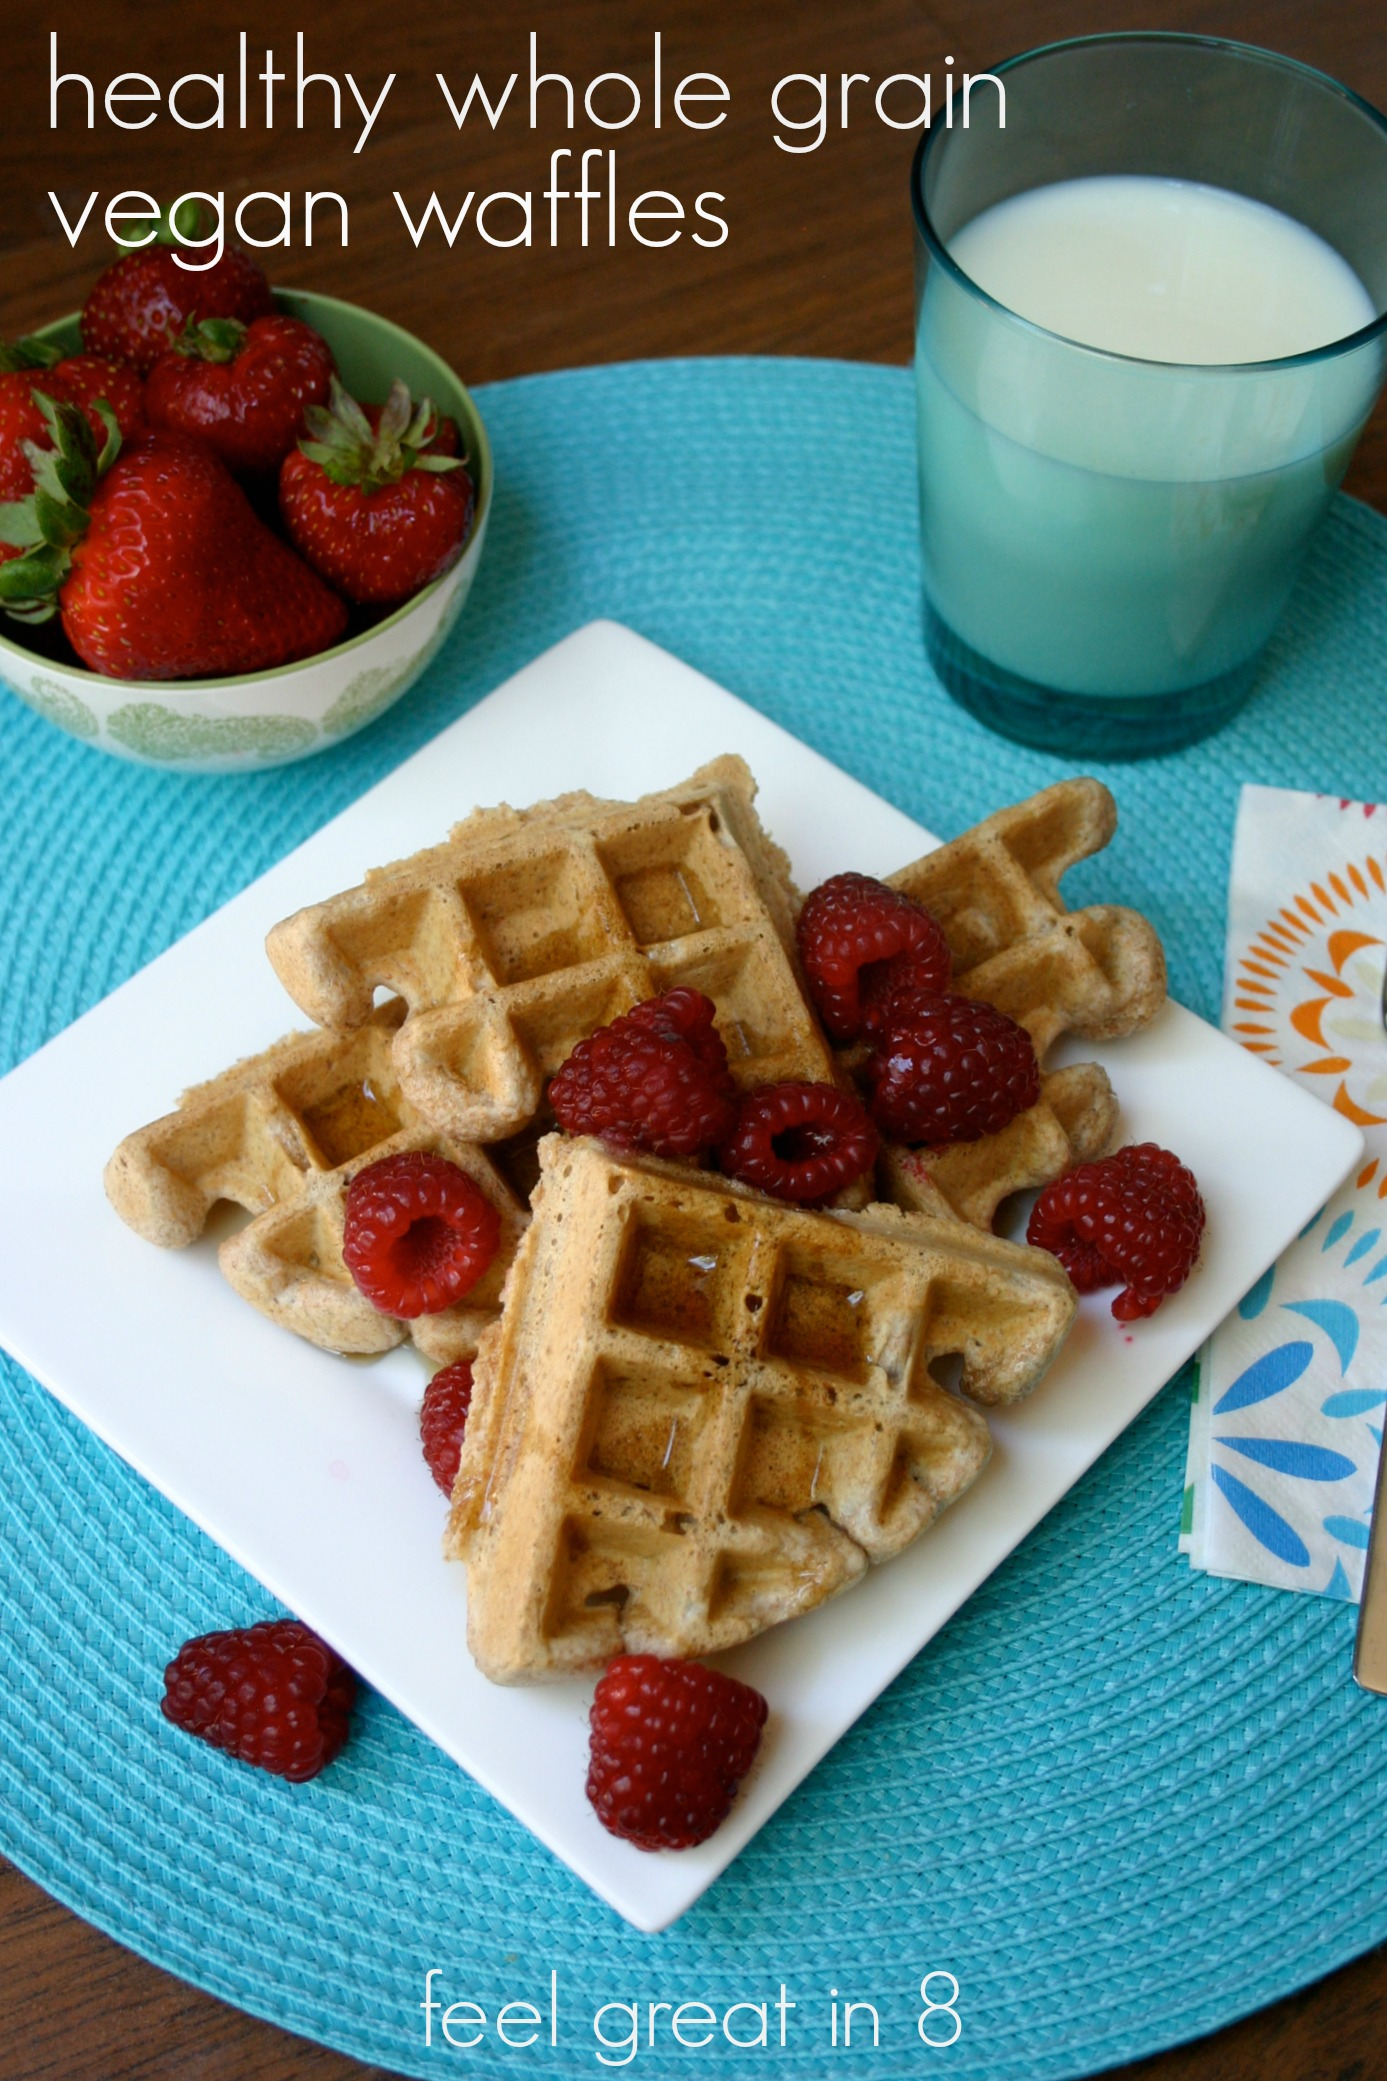 Healthy Whole Grain Vegan Waffles - You won't believe these delicious waffles are made with whole wheat, chia seeds, and coconut oil! #healthy #breakfast #vegan